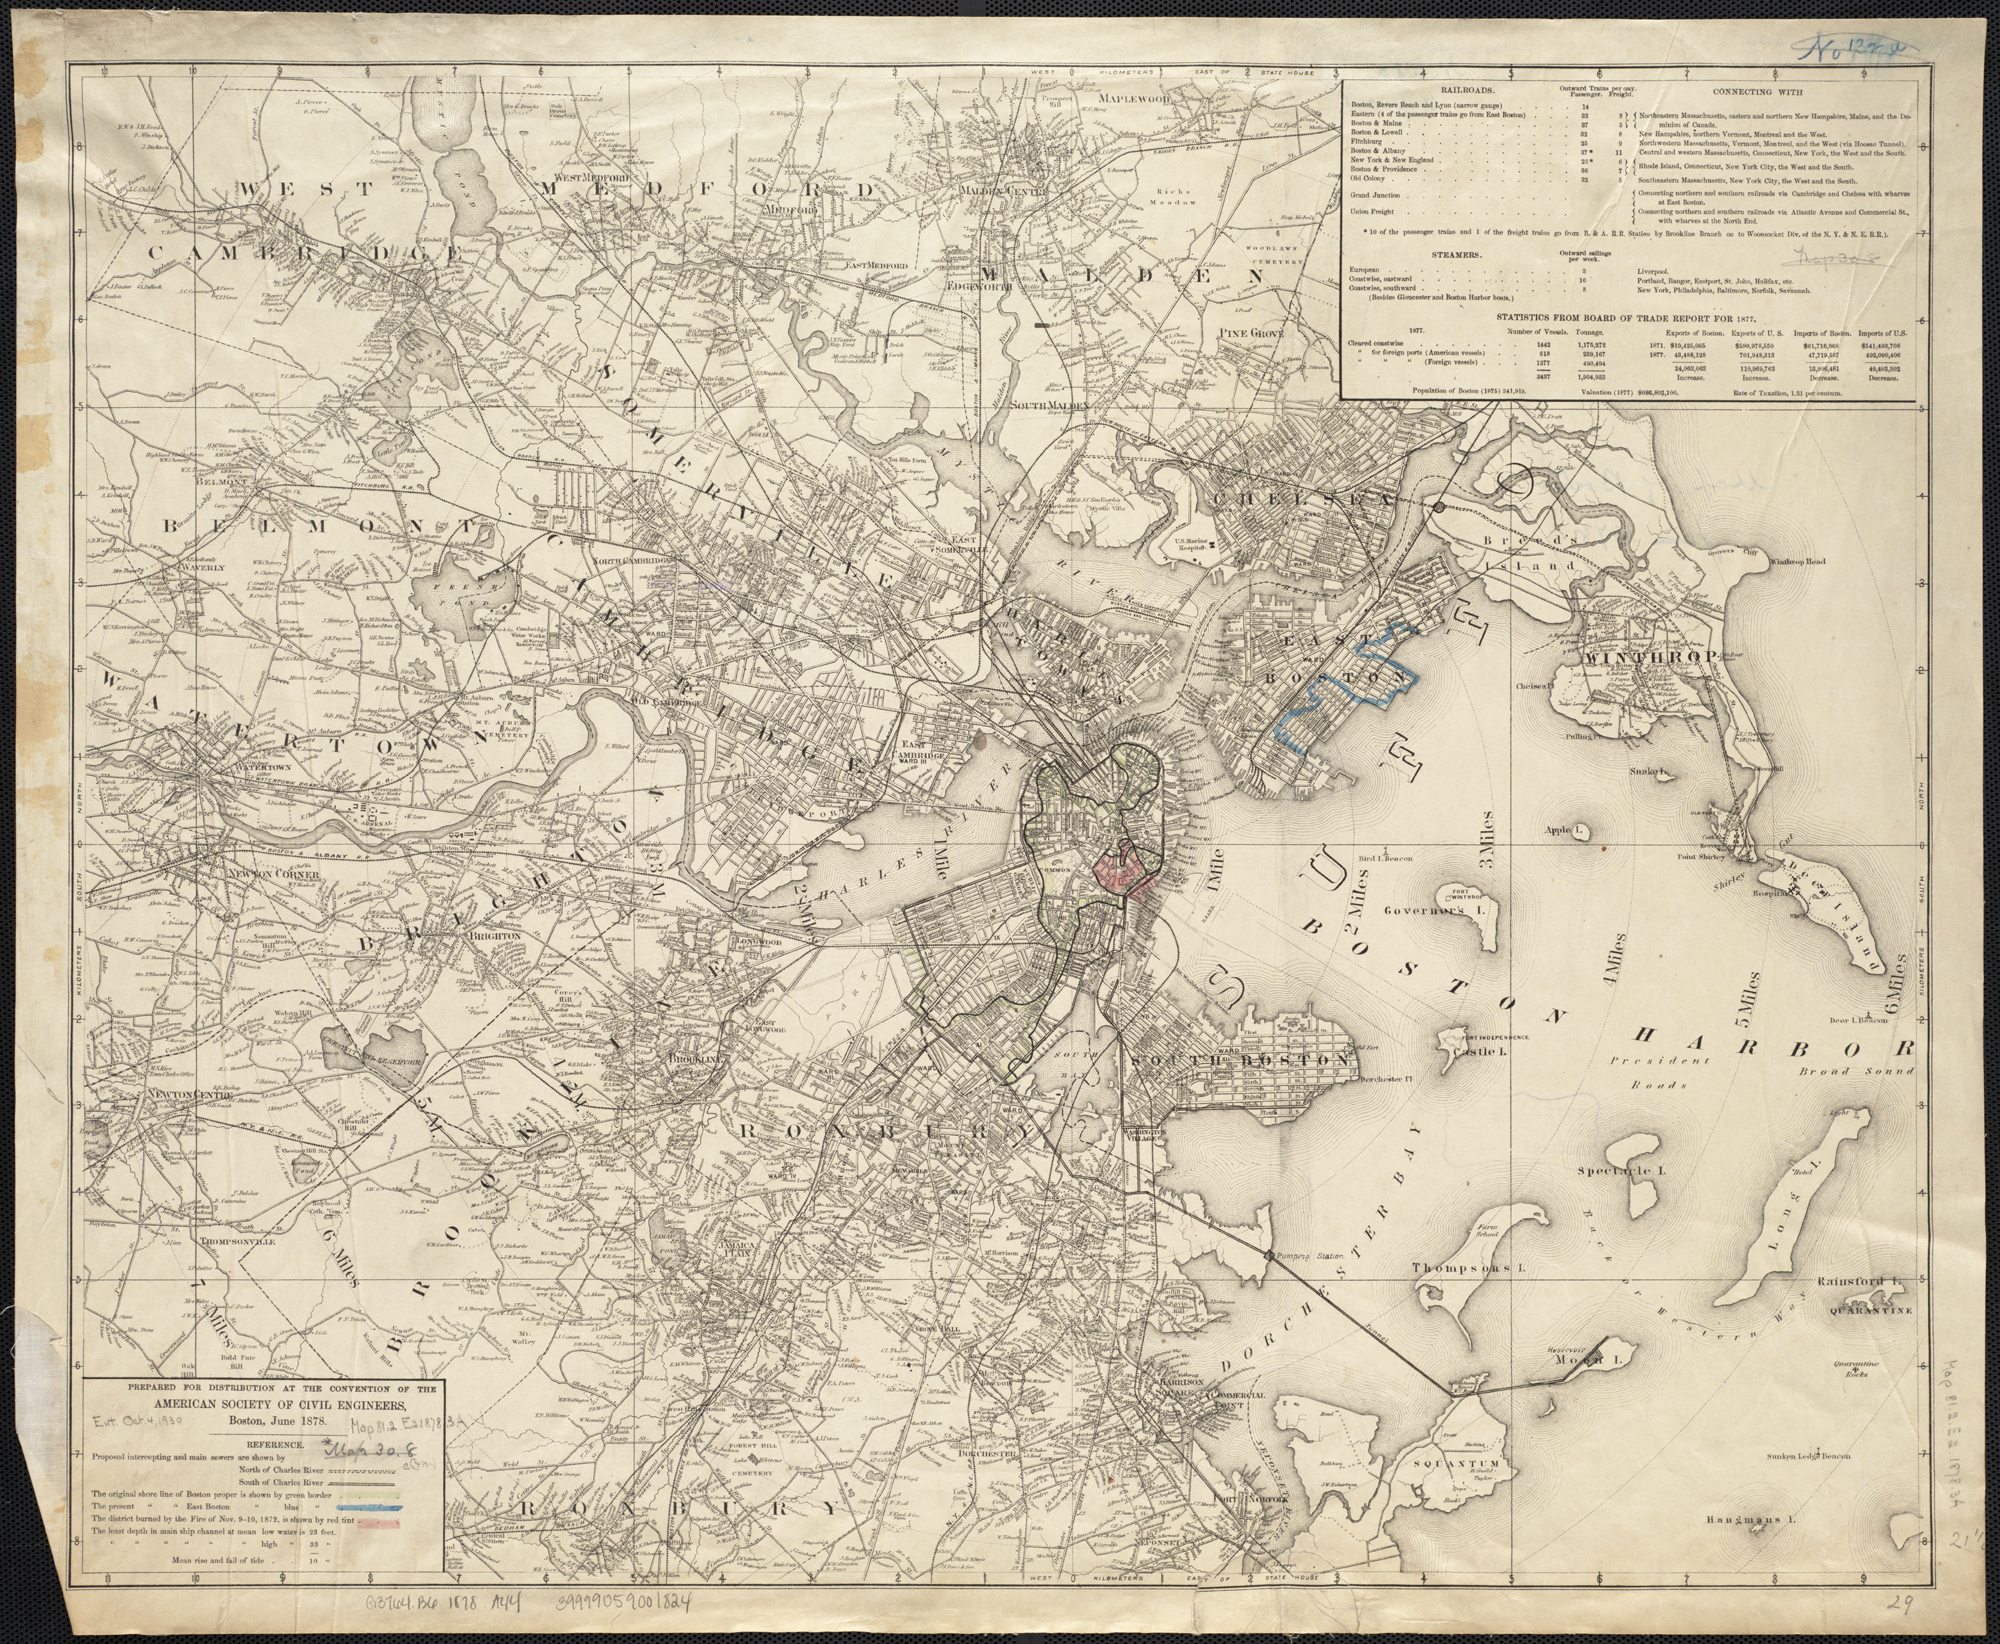 Map Of Boston And Vicinity Pictures To Pin On Pinterest PinsDaddy - Map of boston vicinity